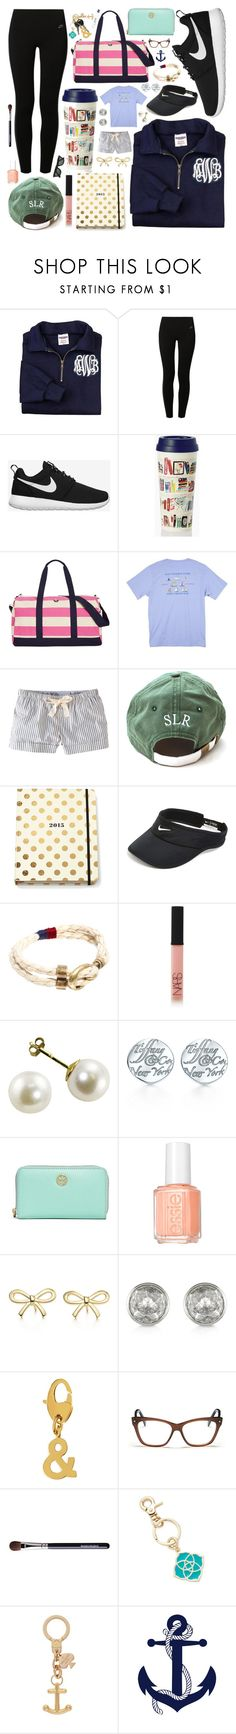 """//comfy//"" by whale-of-a-tale ❤ liked on Polyvore featuring NIKE, Kate Spade, Tommy Hilfiger, Southern Tide, Jack Wills, Icon Brand, NARS Cosmetics, Tiffany & Co., Tory Burch and Essie"